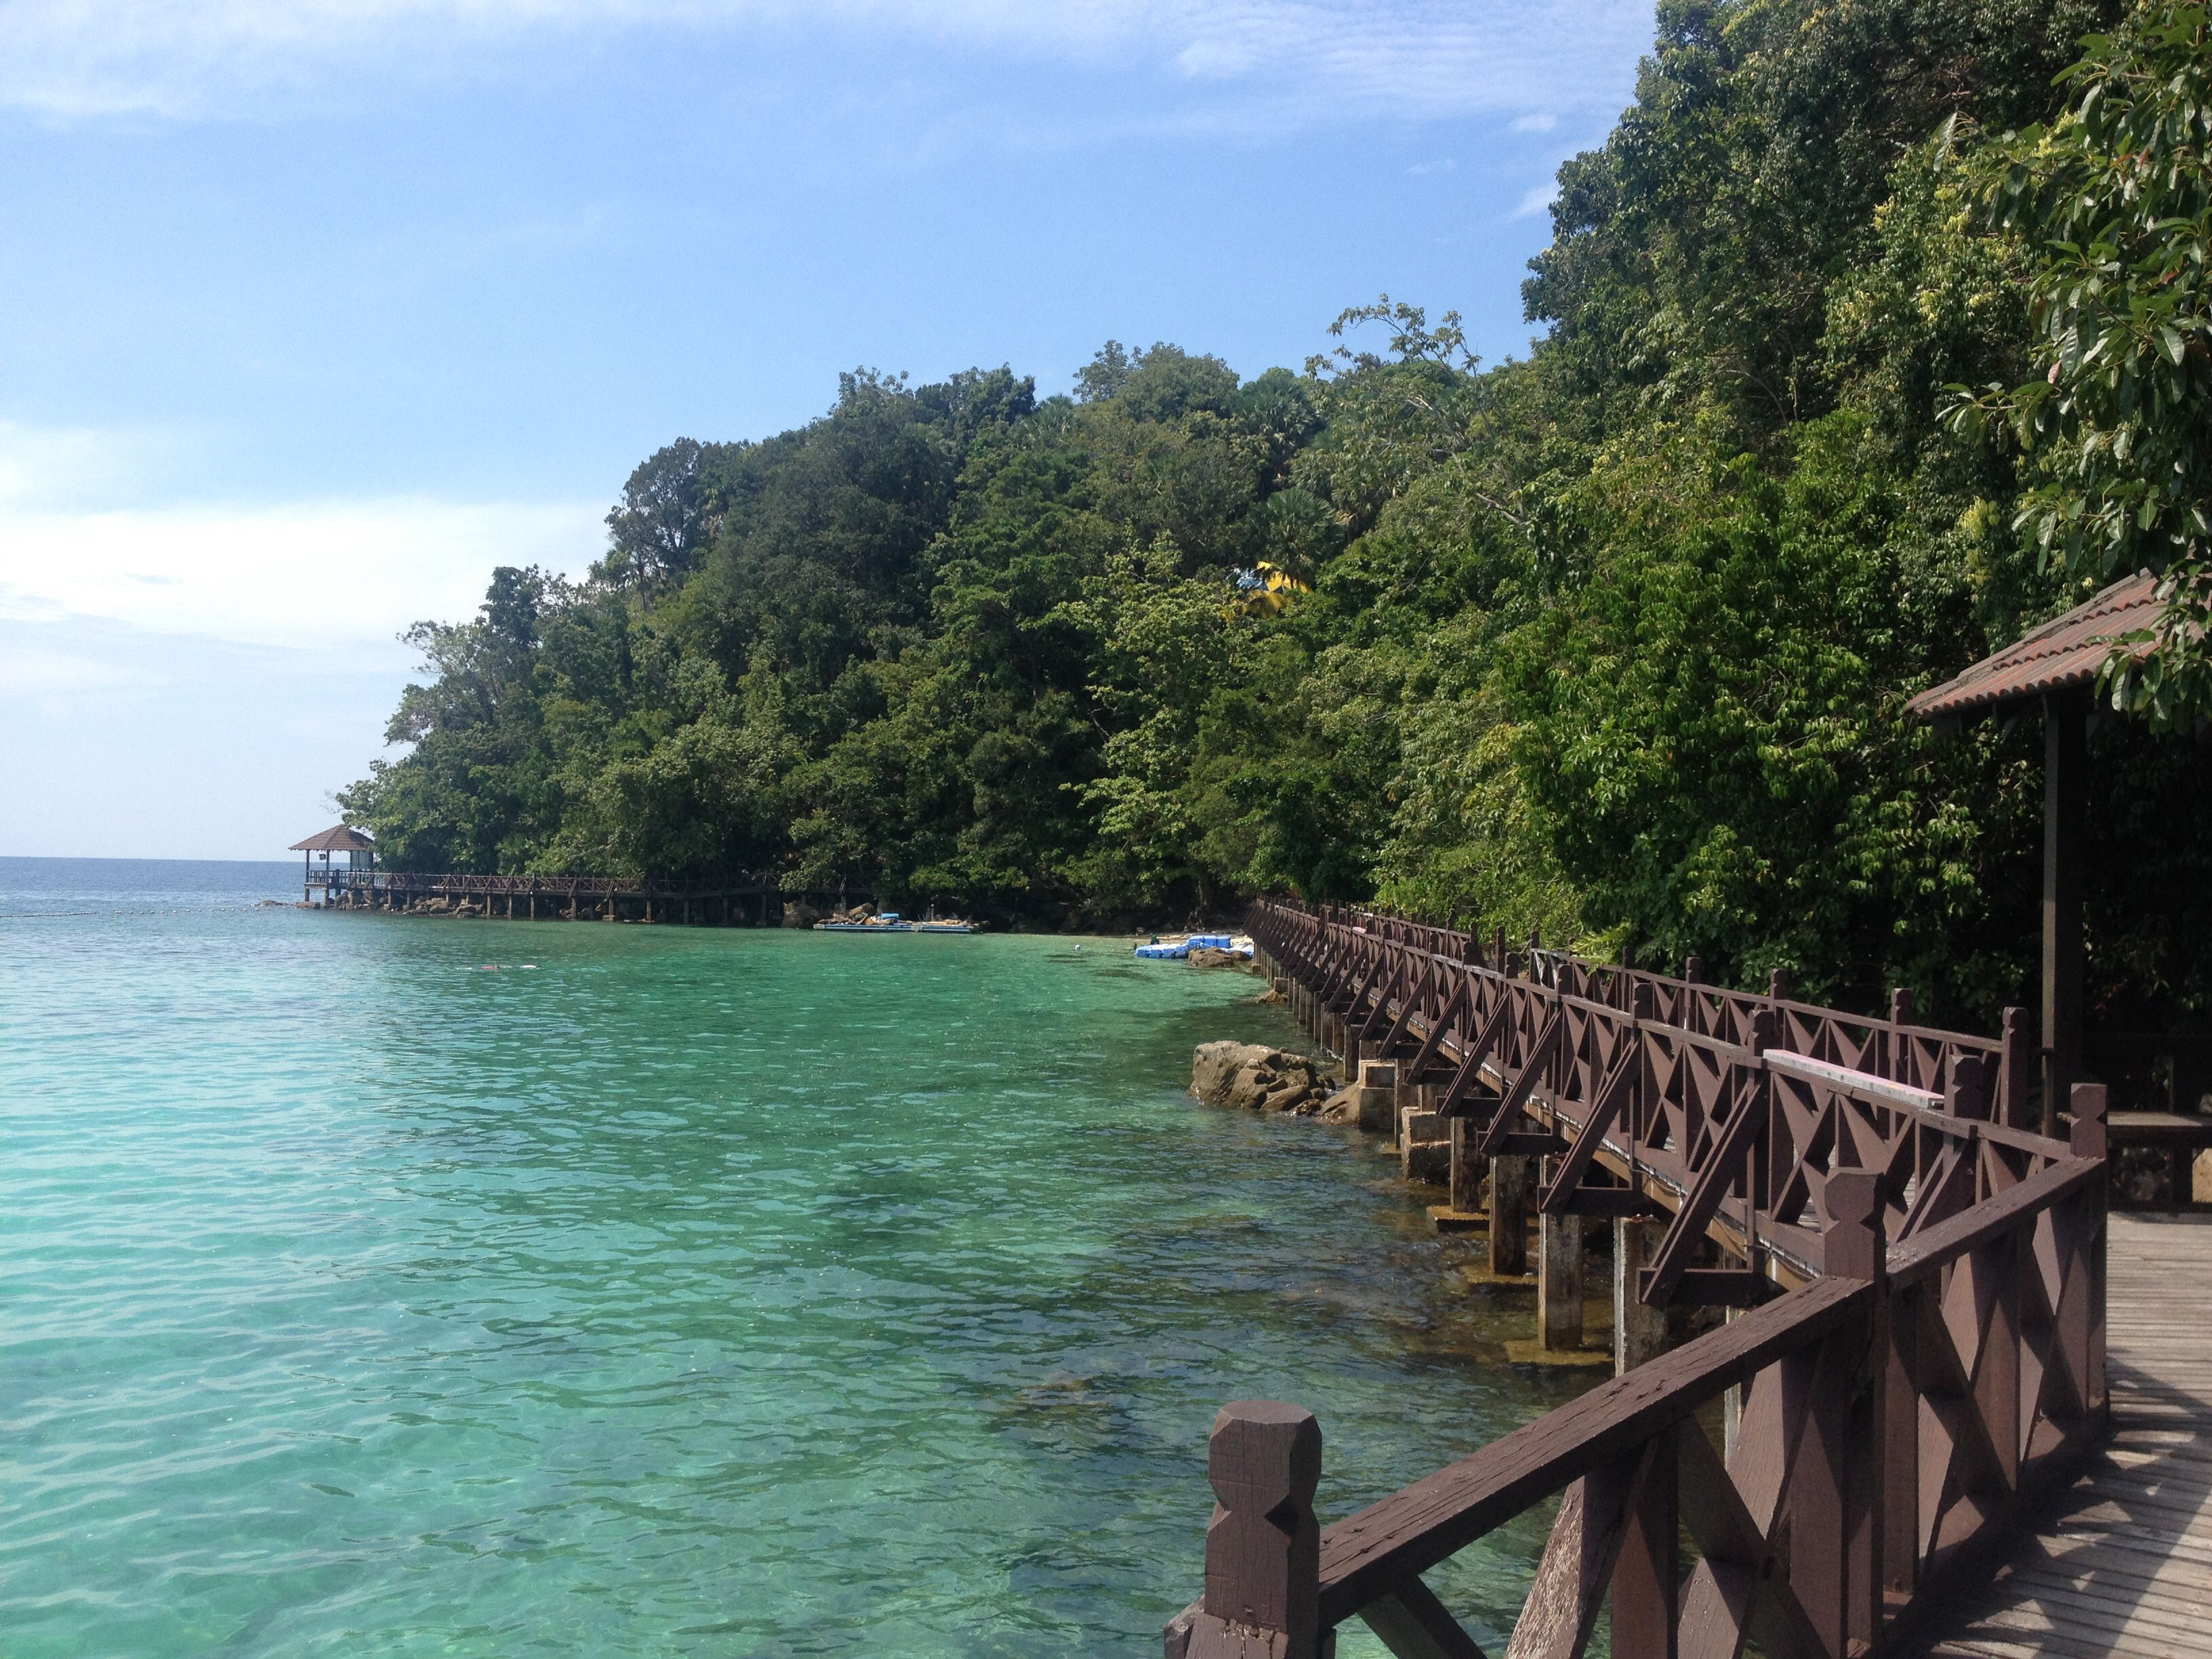 Marine park, Langkawi island, Penang. Perfect snorkelling destination. Backpacking South East Asia.